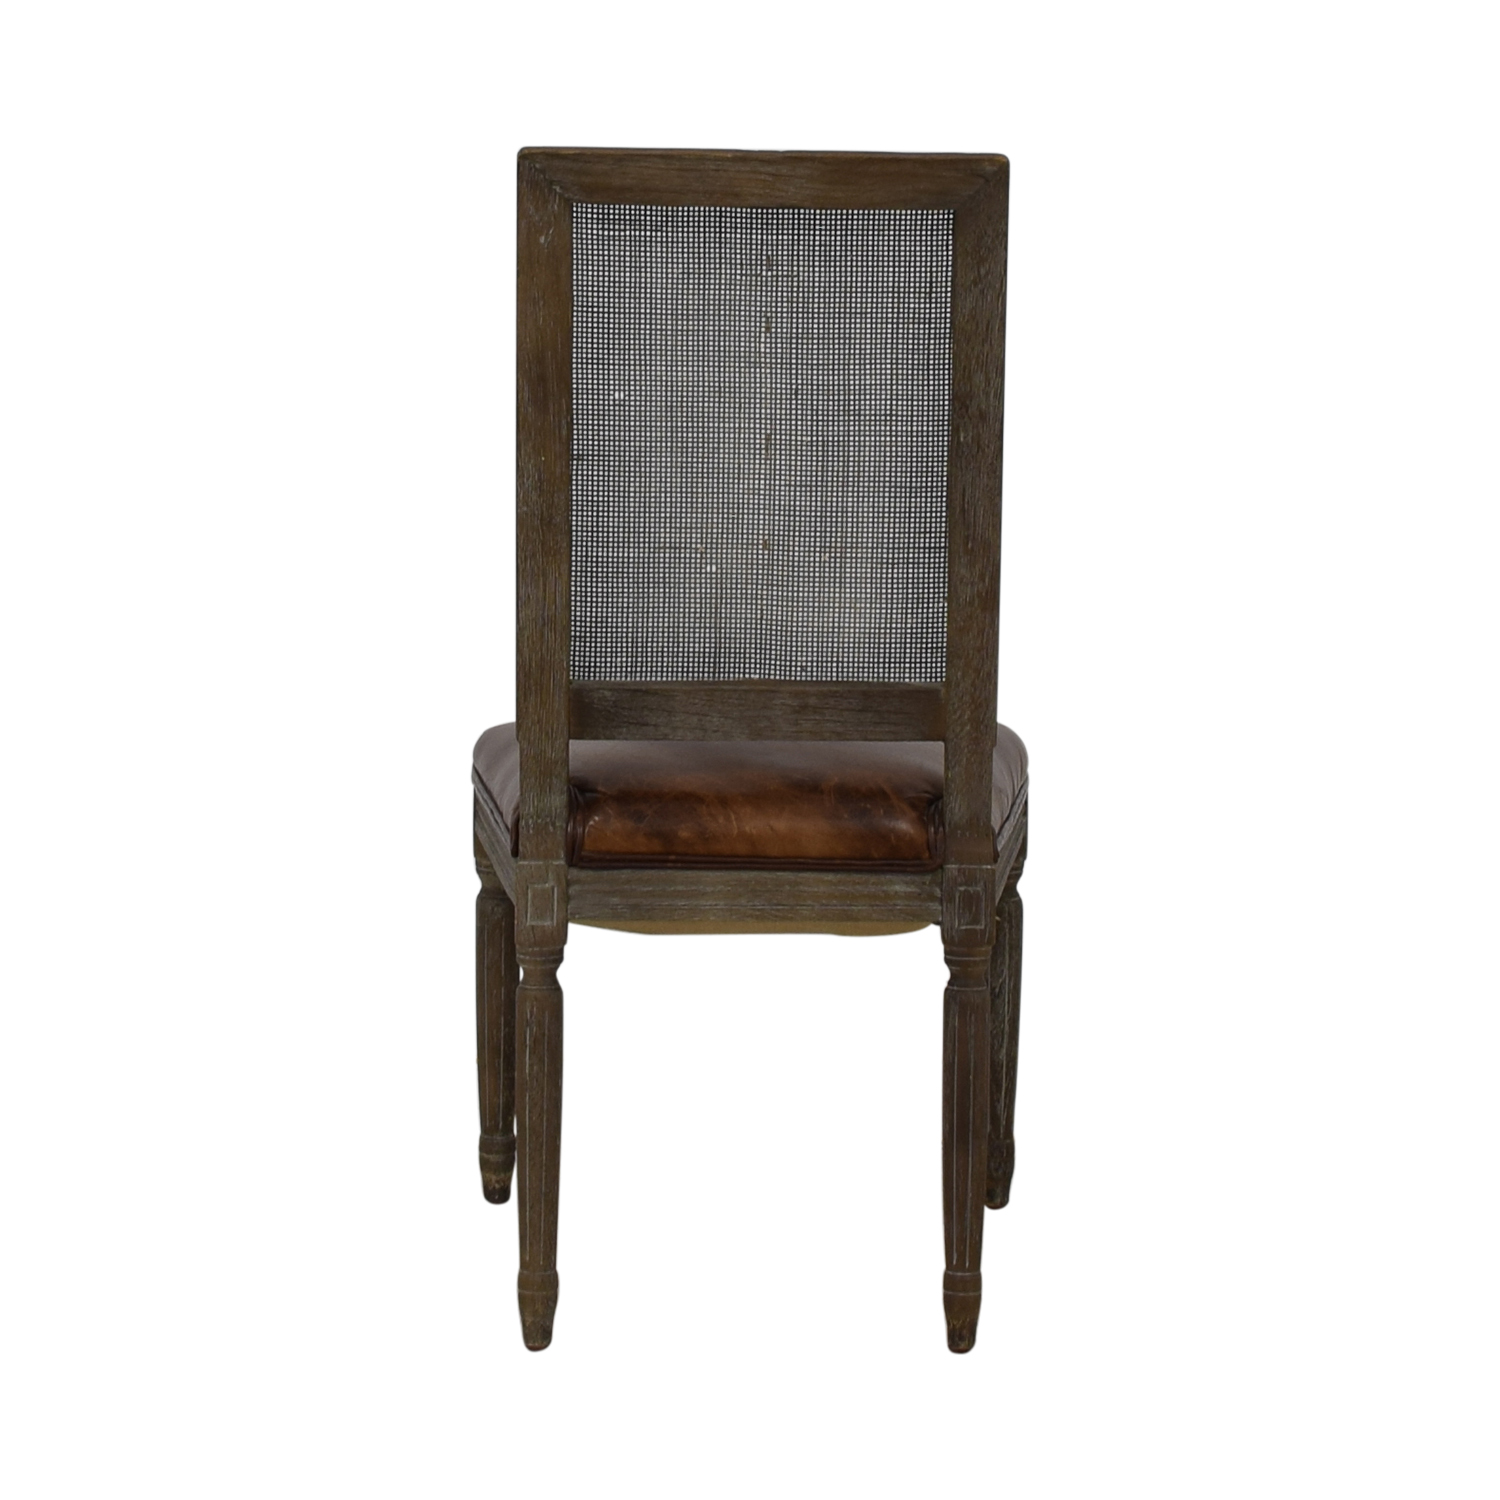 buy Restoration Hardware Restoration Hardware Vintage French Square Cane Back Leather Side Chair online